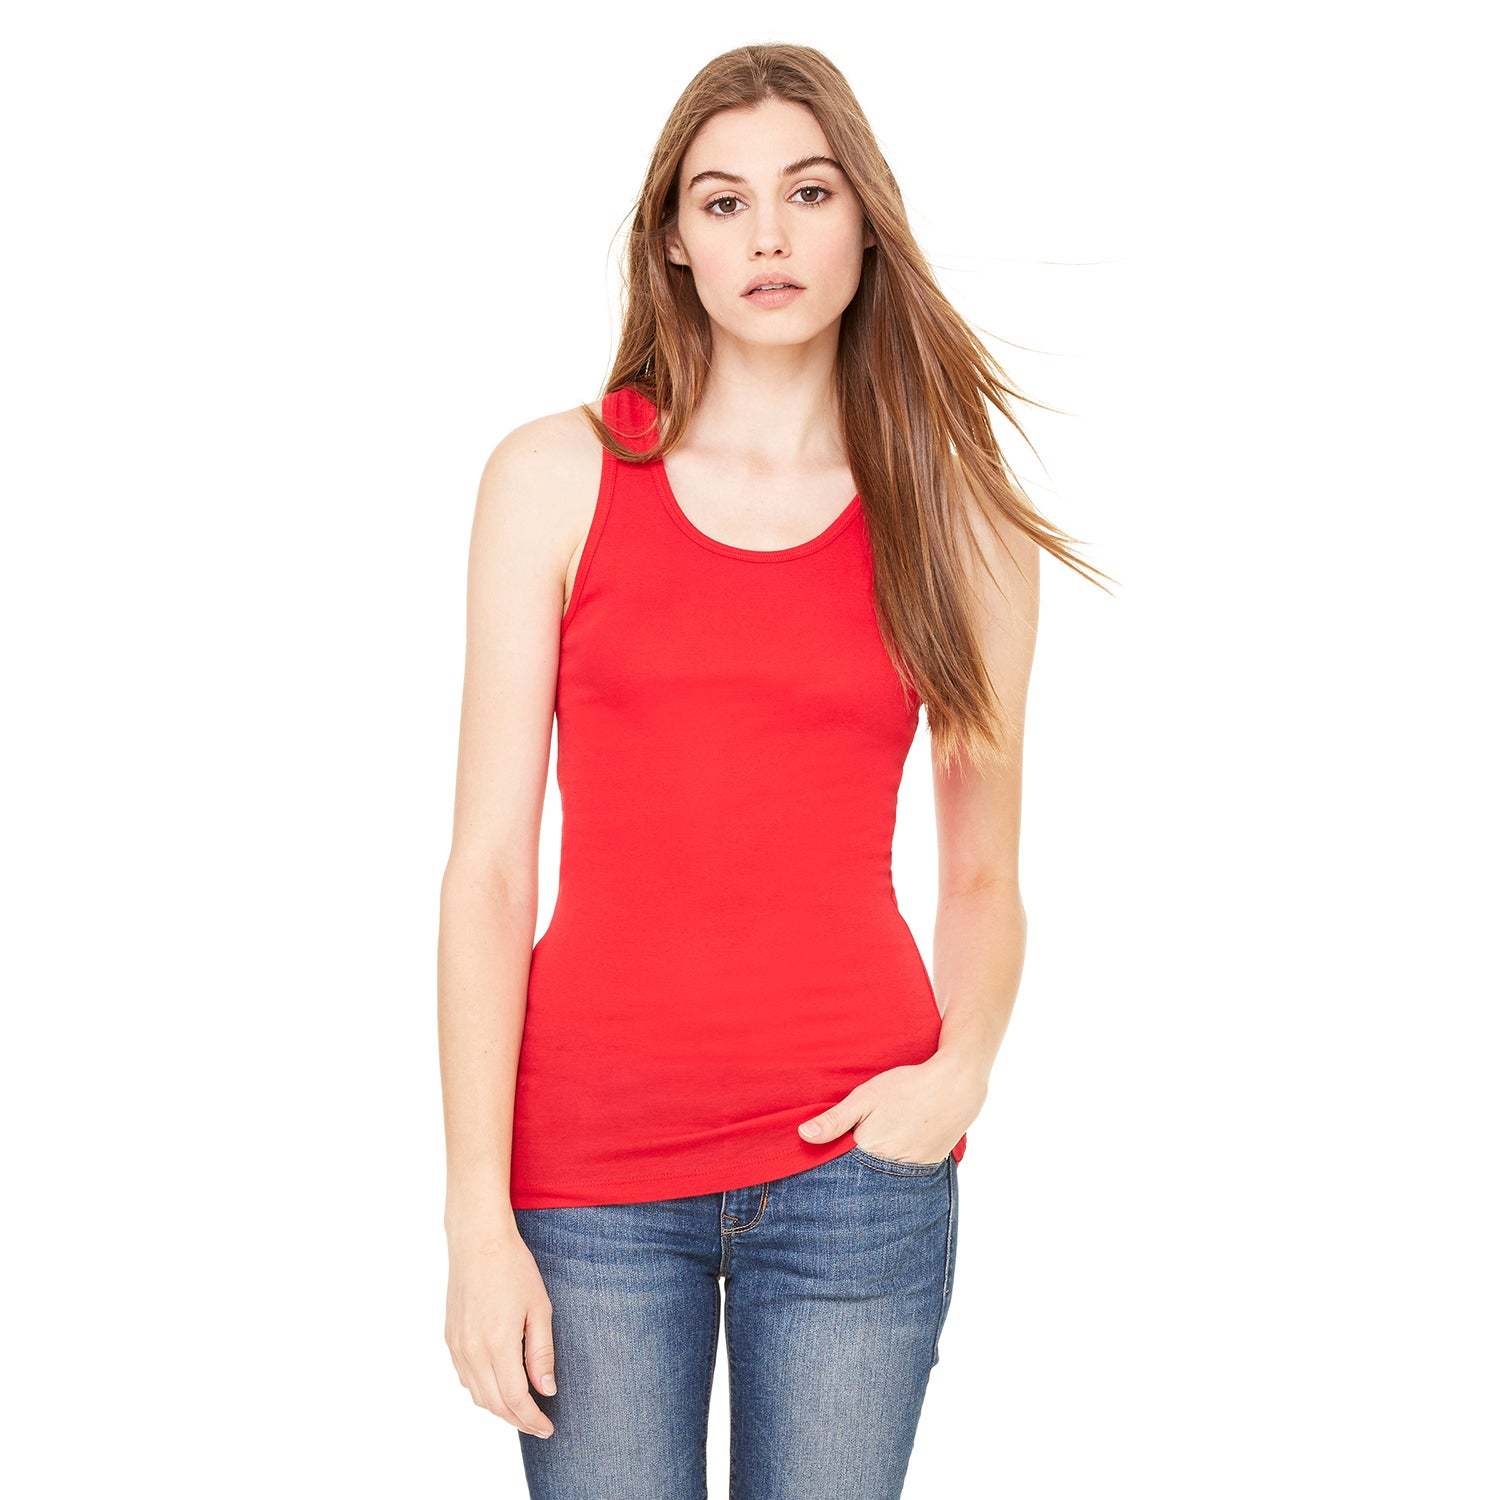 Sheer Women's Red Mini Rib Racerback Tank (L) (spandex)